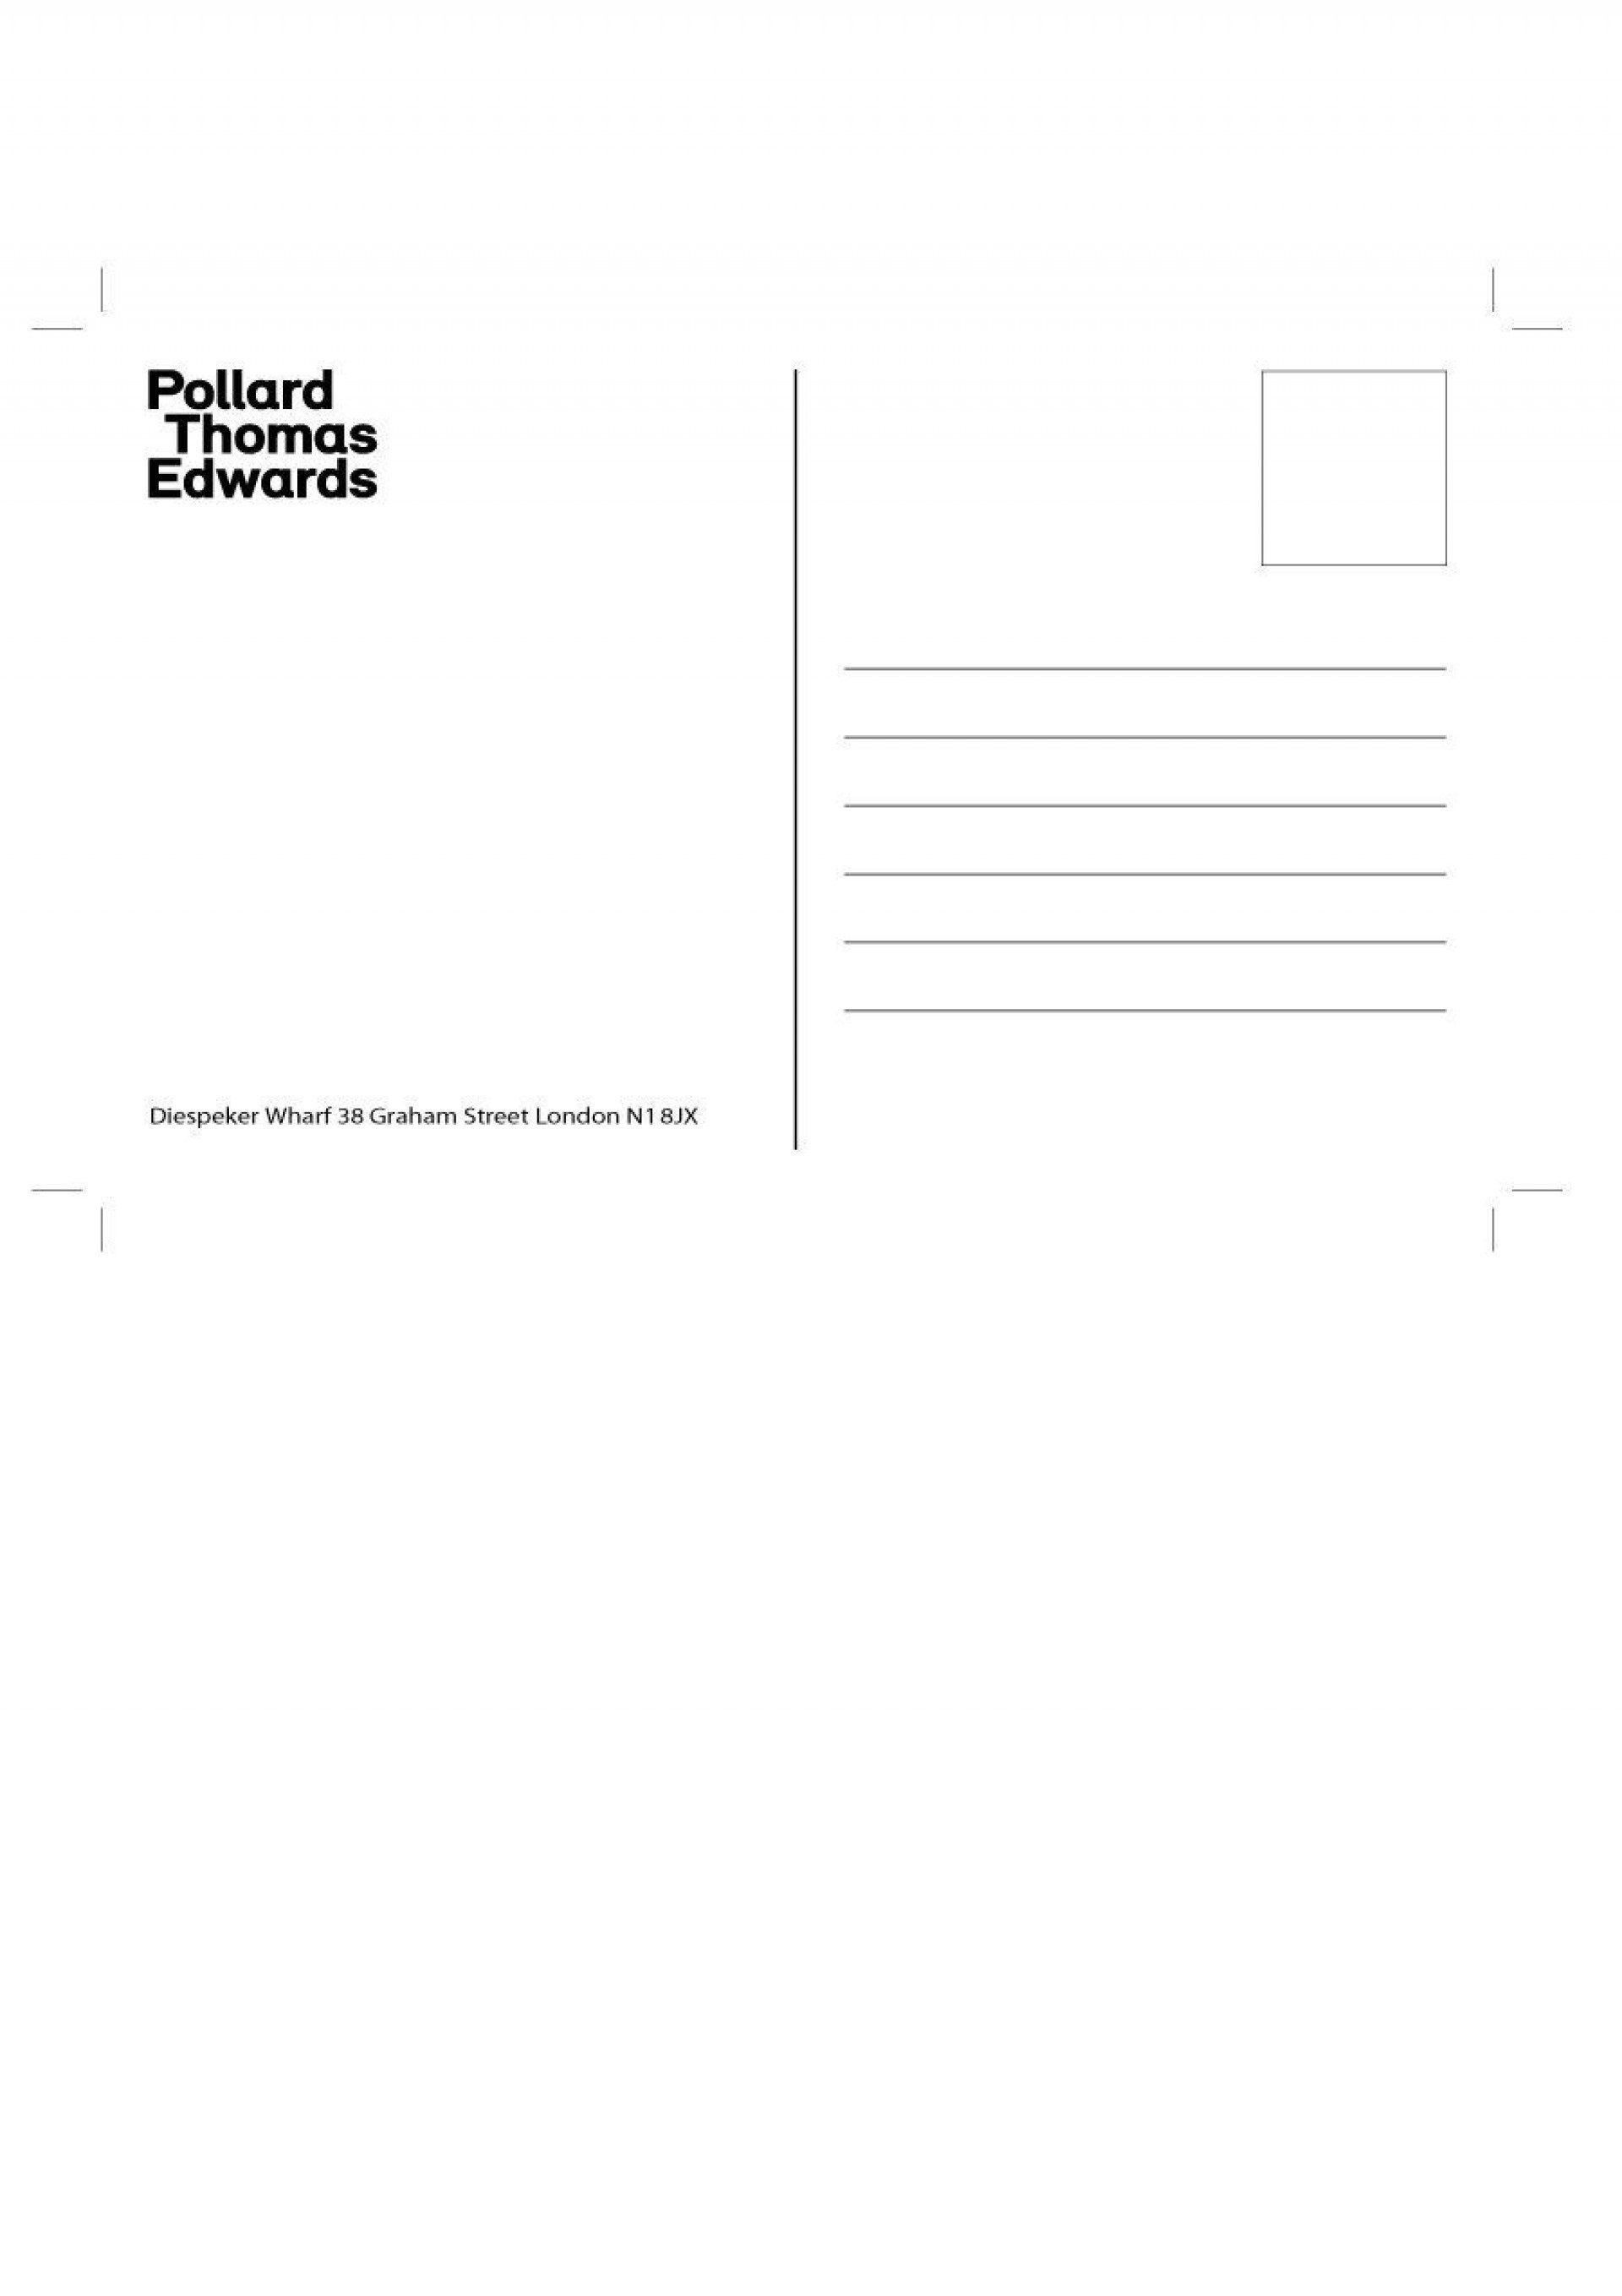 003 Awful Rsvp Postcard Template For Word Sample 1920